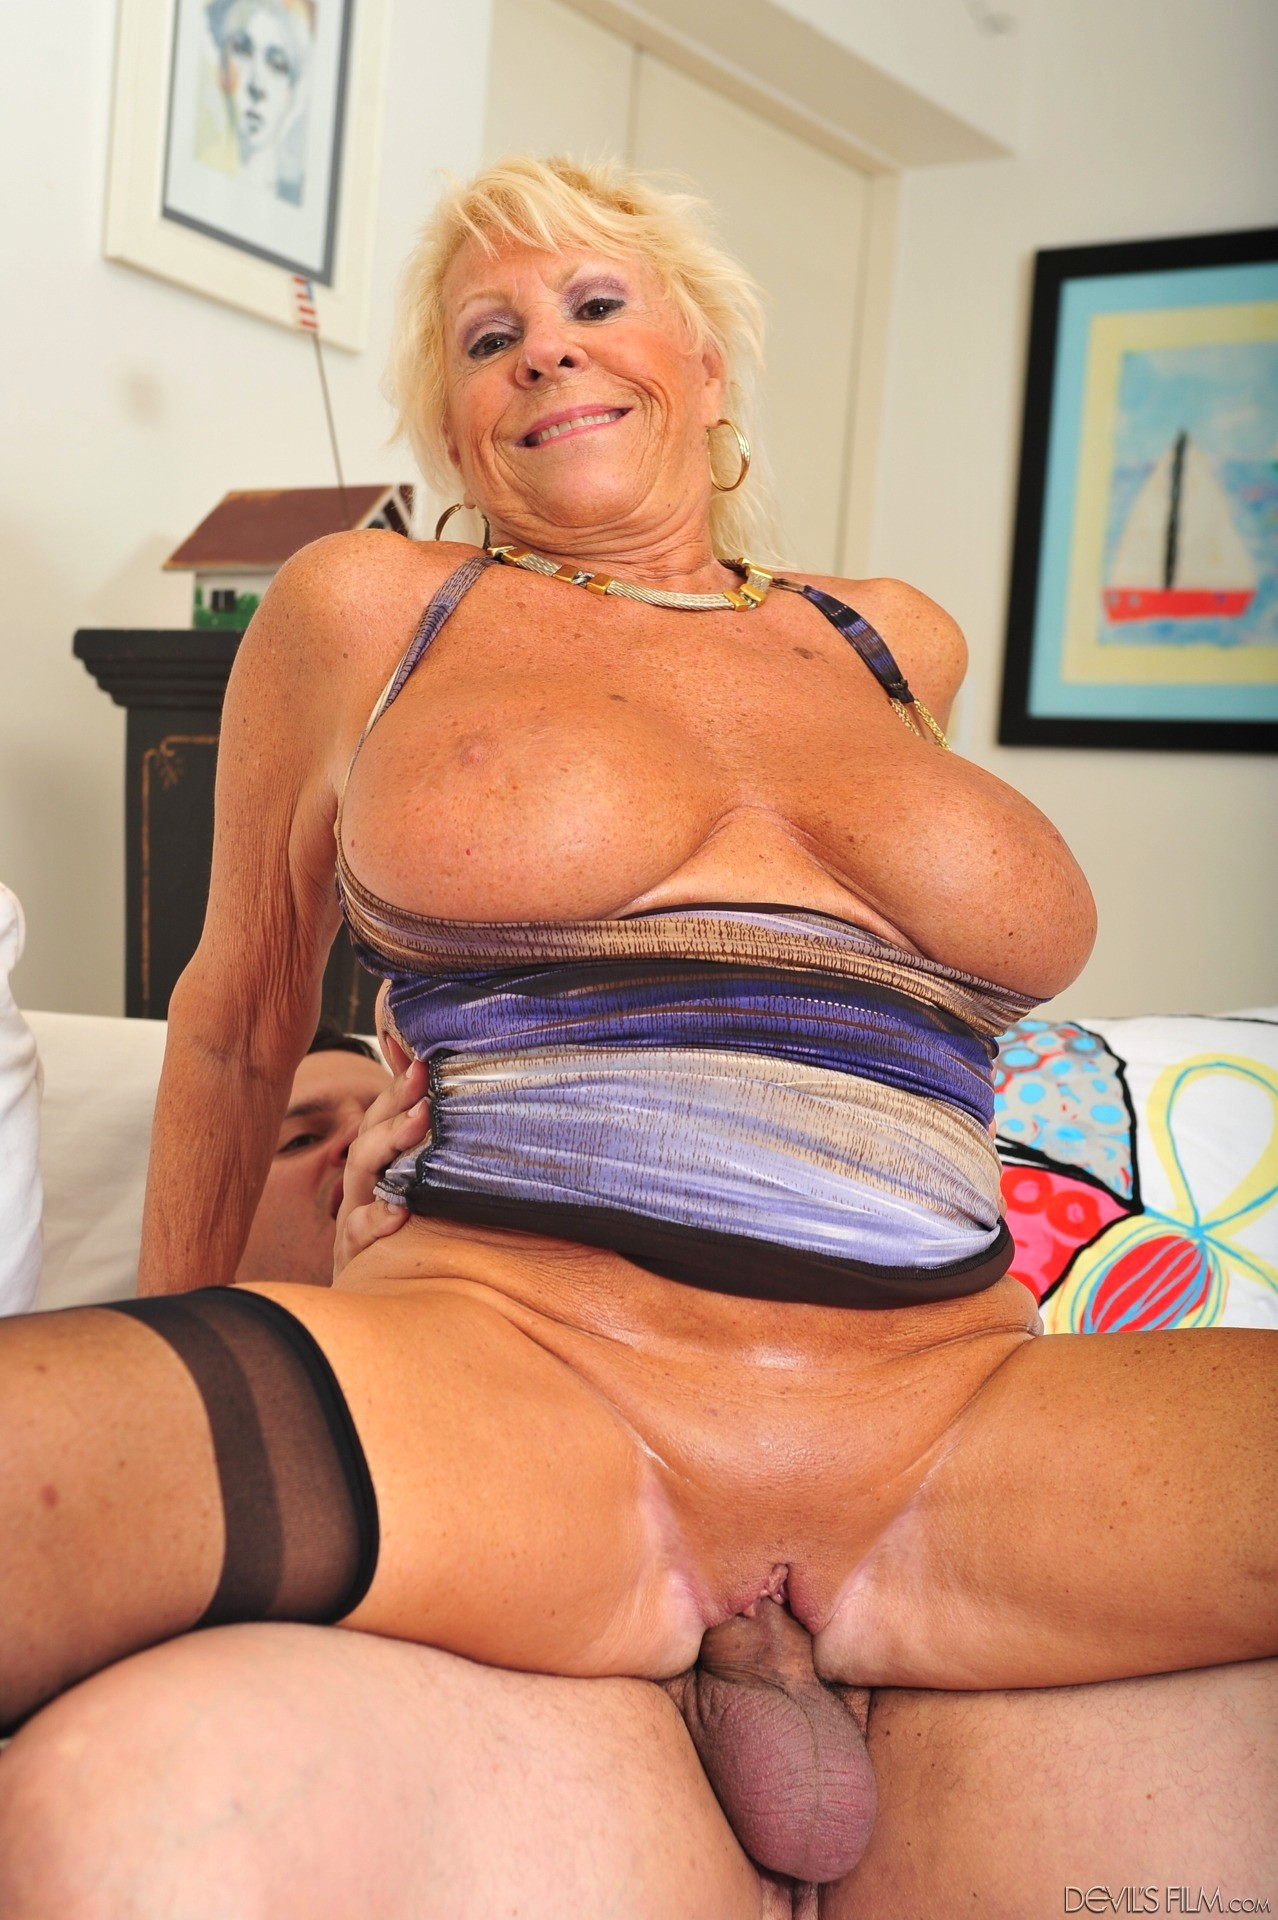 Babe Today Devils Film Mandi Mcgraw Summer Mature Art -5715